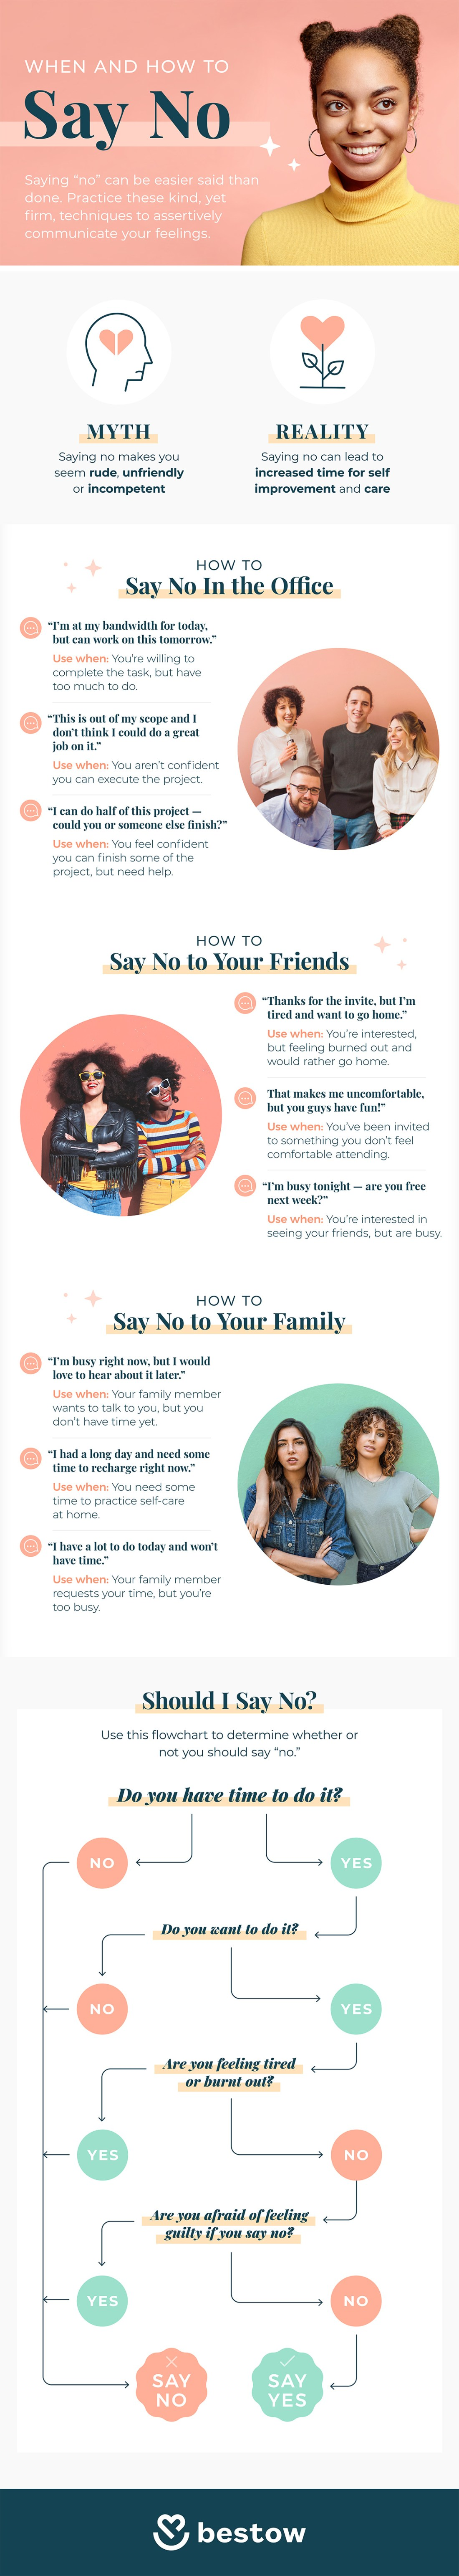 How to say no politely infographic